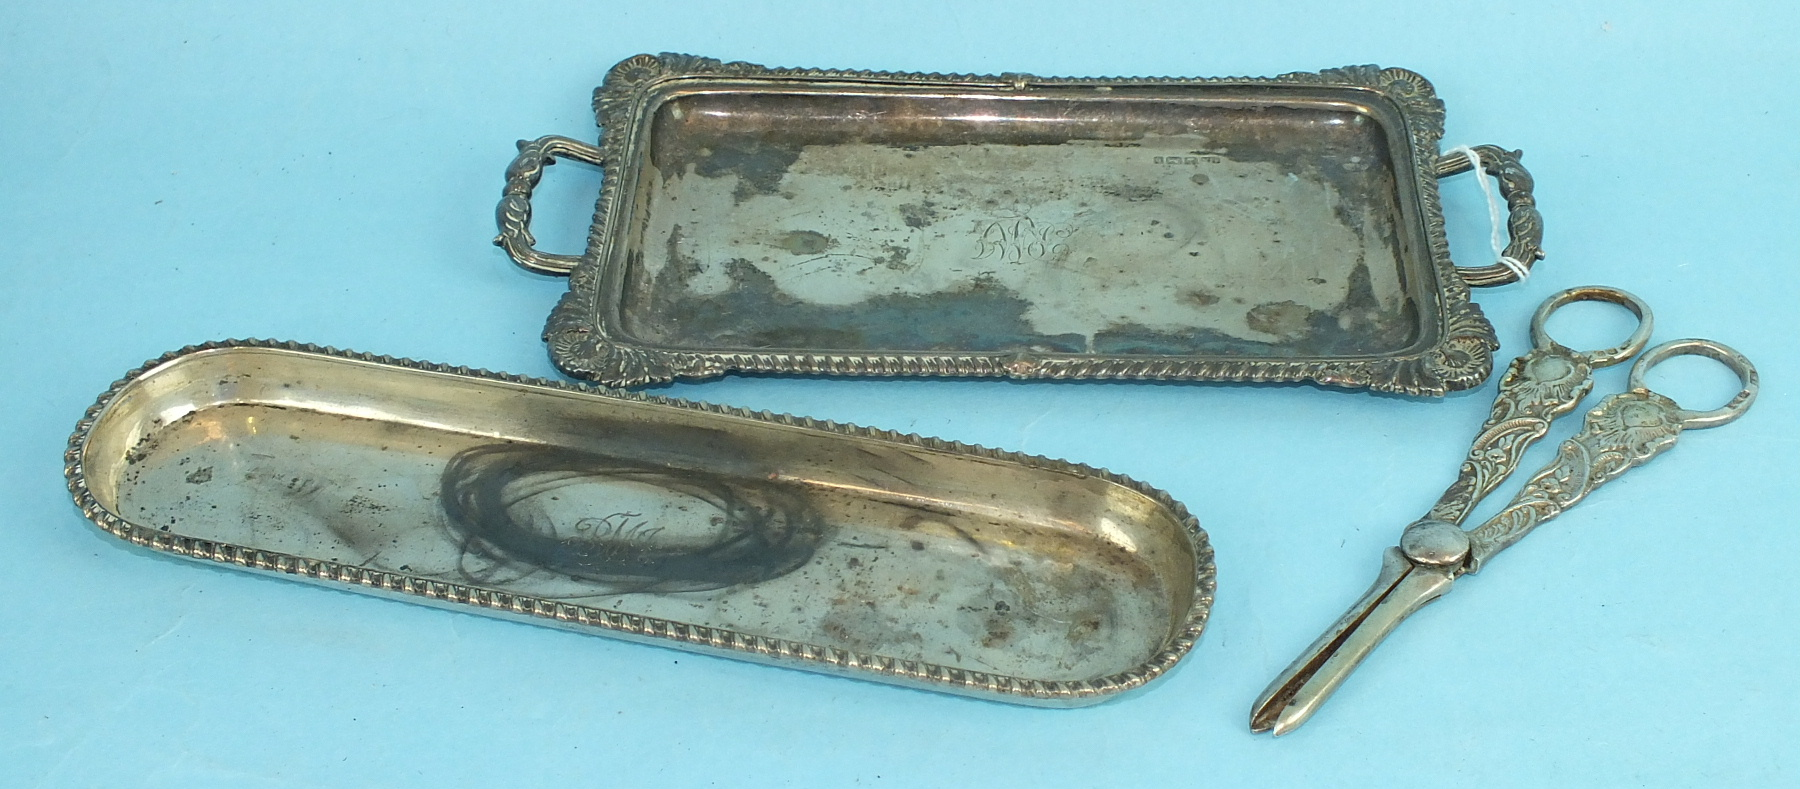 Lot 431 - A small silver two-handled rectangular tray with embossed decorated border, Sheffield 1900, 22 x